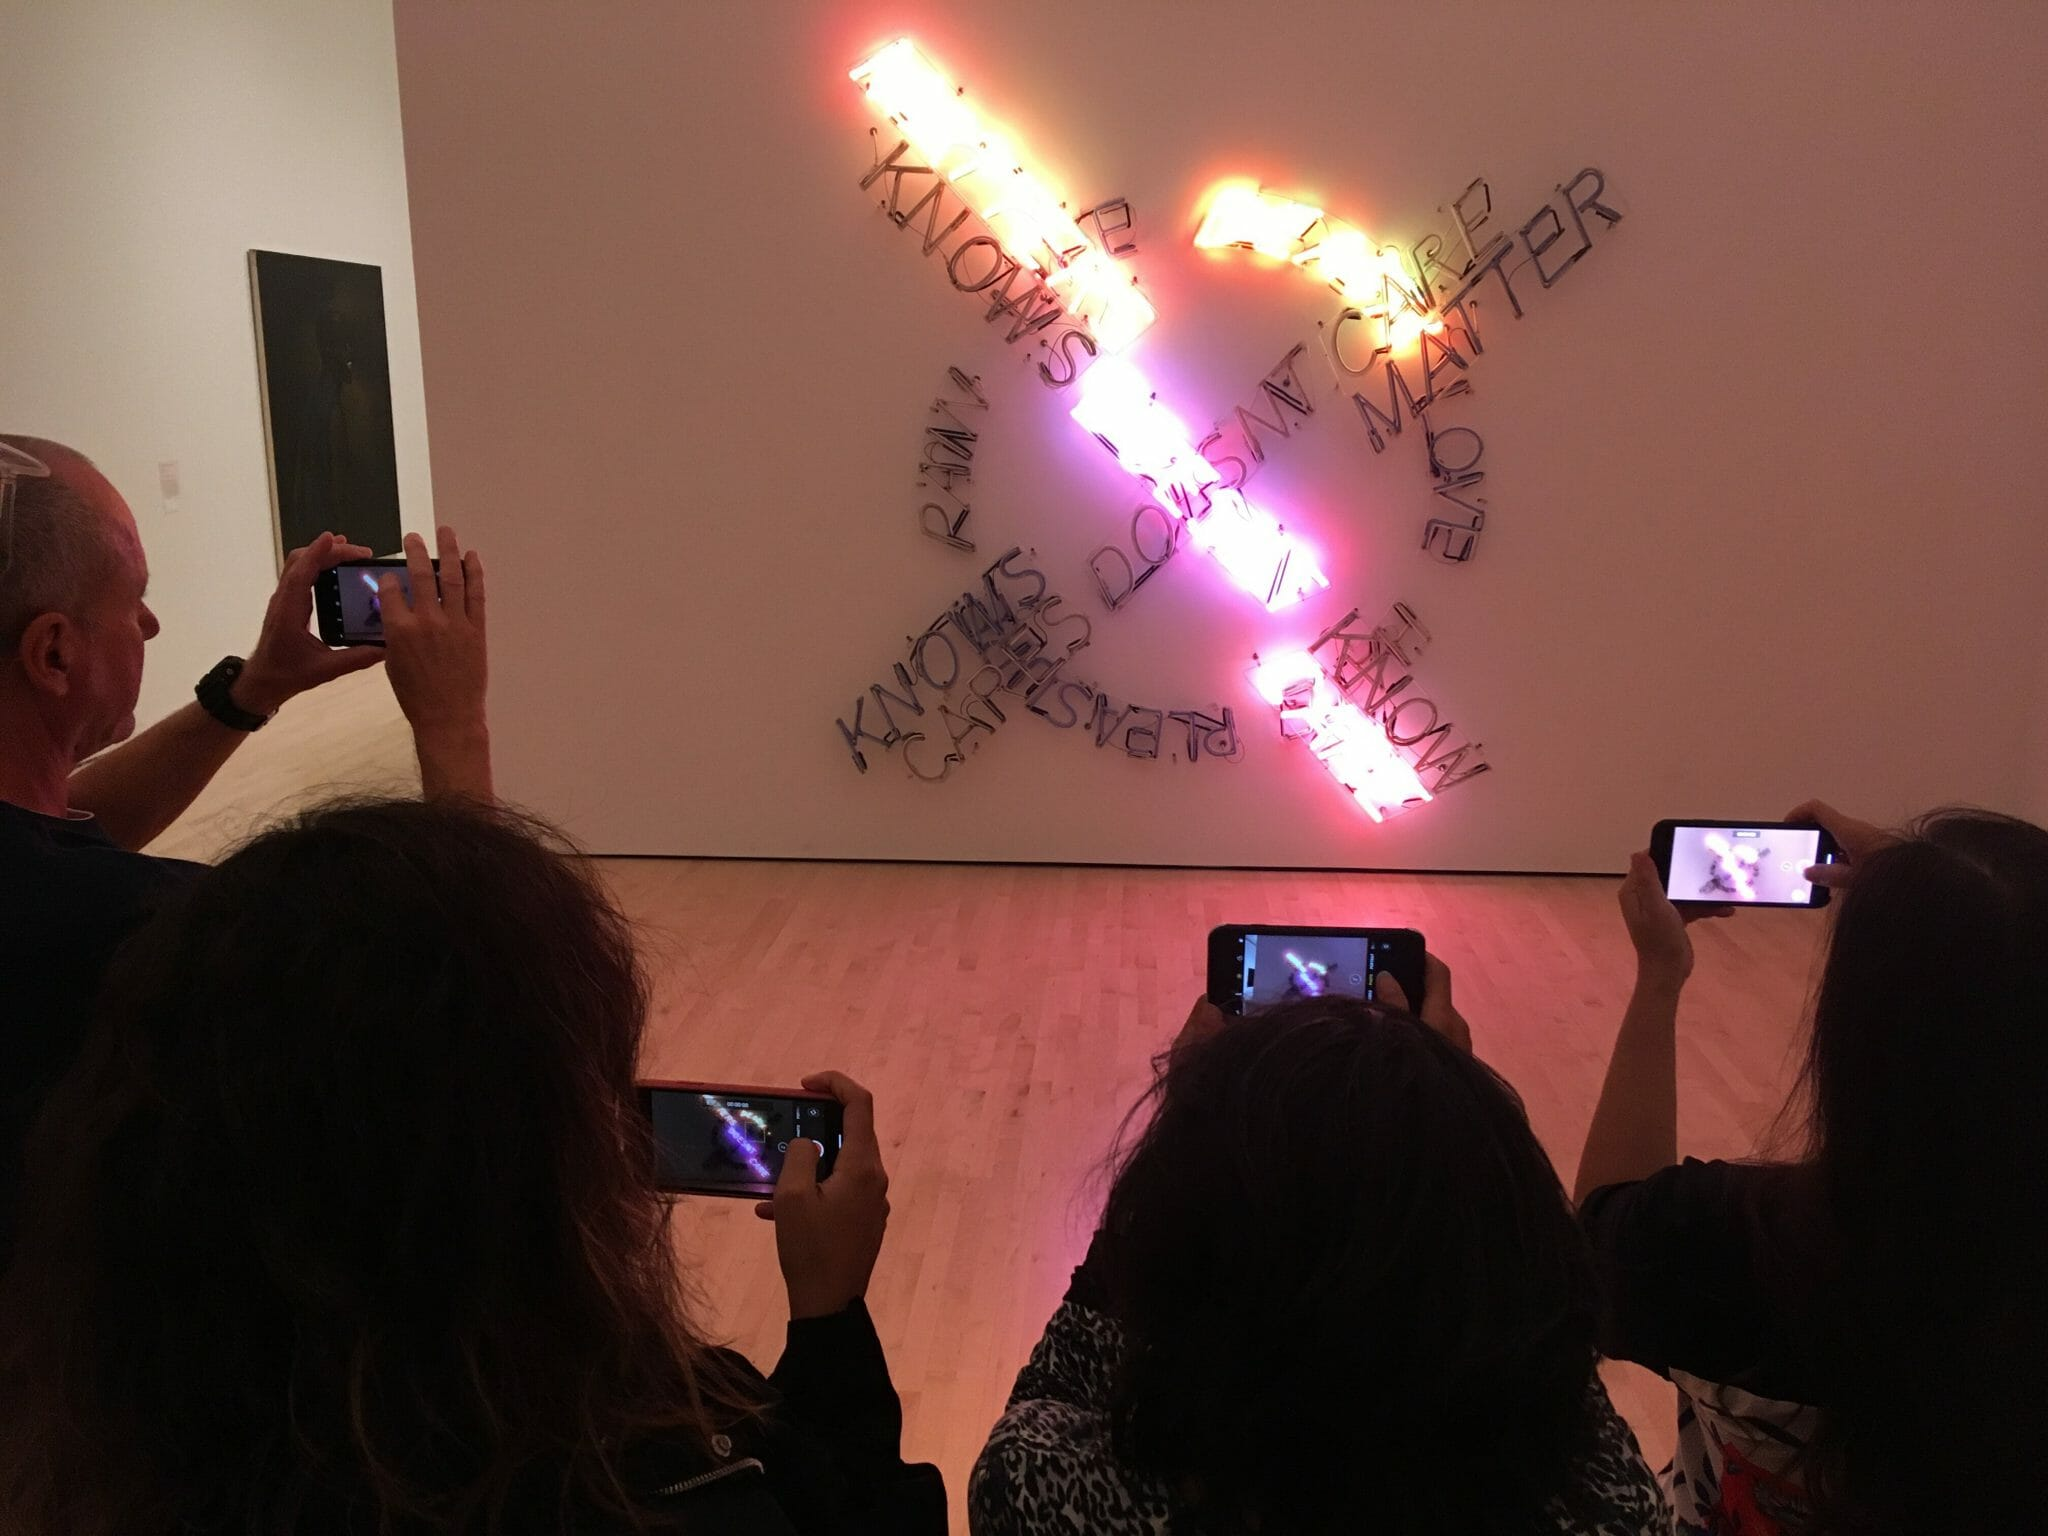 A crowd of people have their phones out to take a photo of a digital interactive exhibit - neon lights in a circle, crossing over with the words 'know' 'care' 'doesn't' - lots of random words